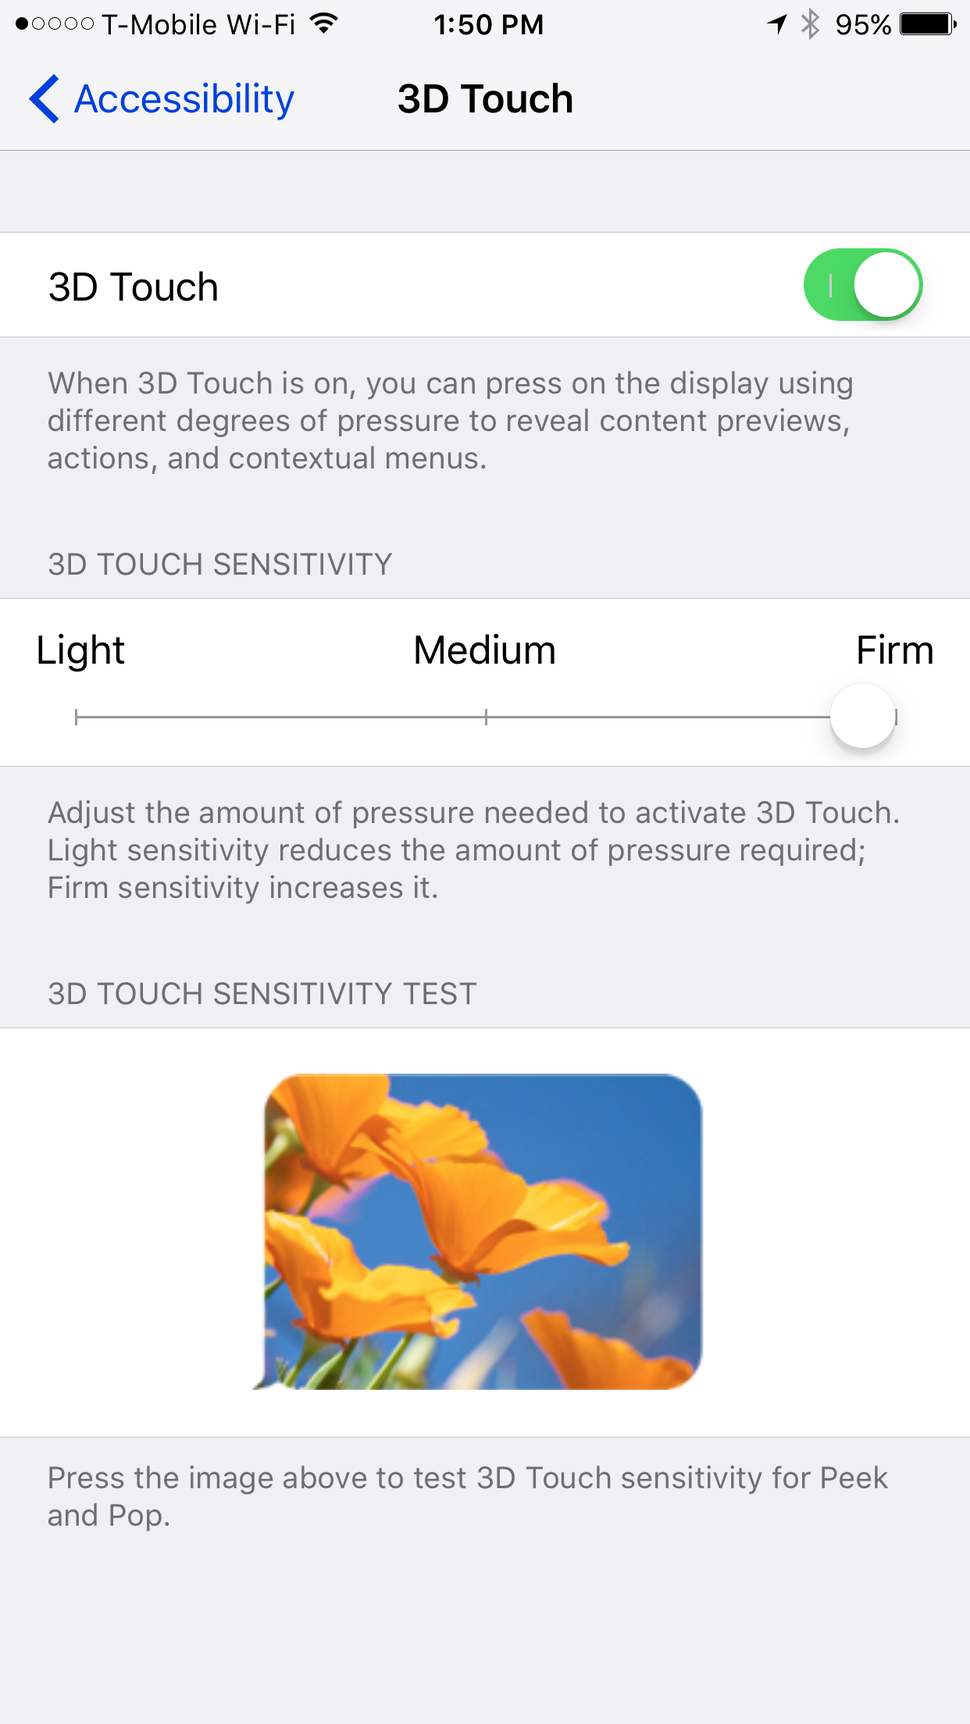 http://core0.staticworld.net/images/article/2015/09/3d-touch-settings-100617263-large970.idge.png